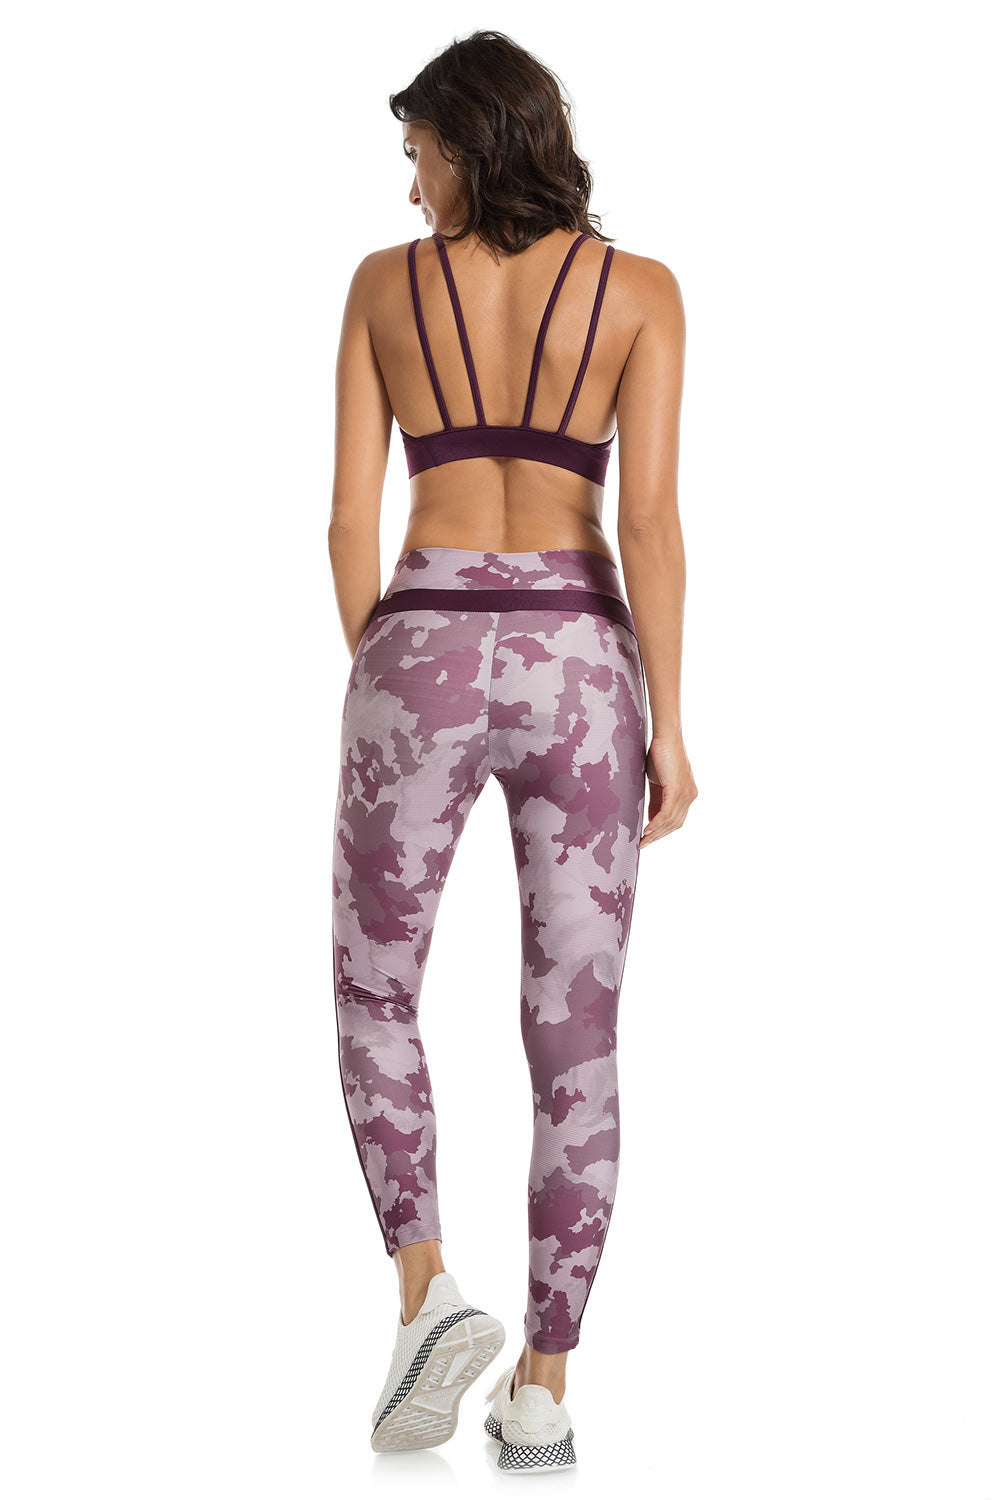 Cool Camuflage Legging 2